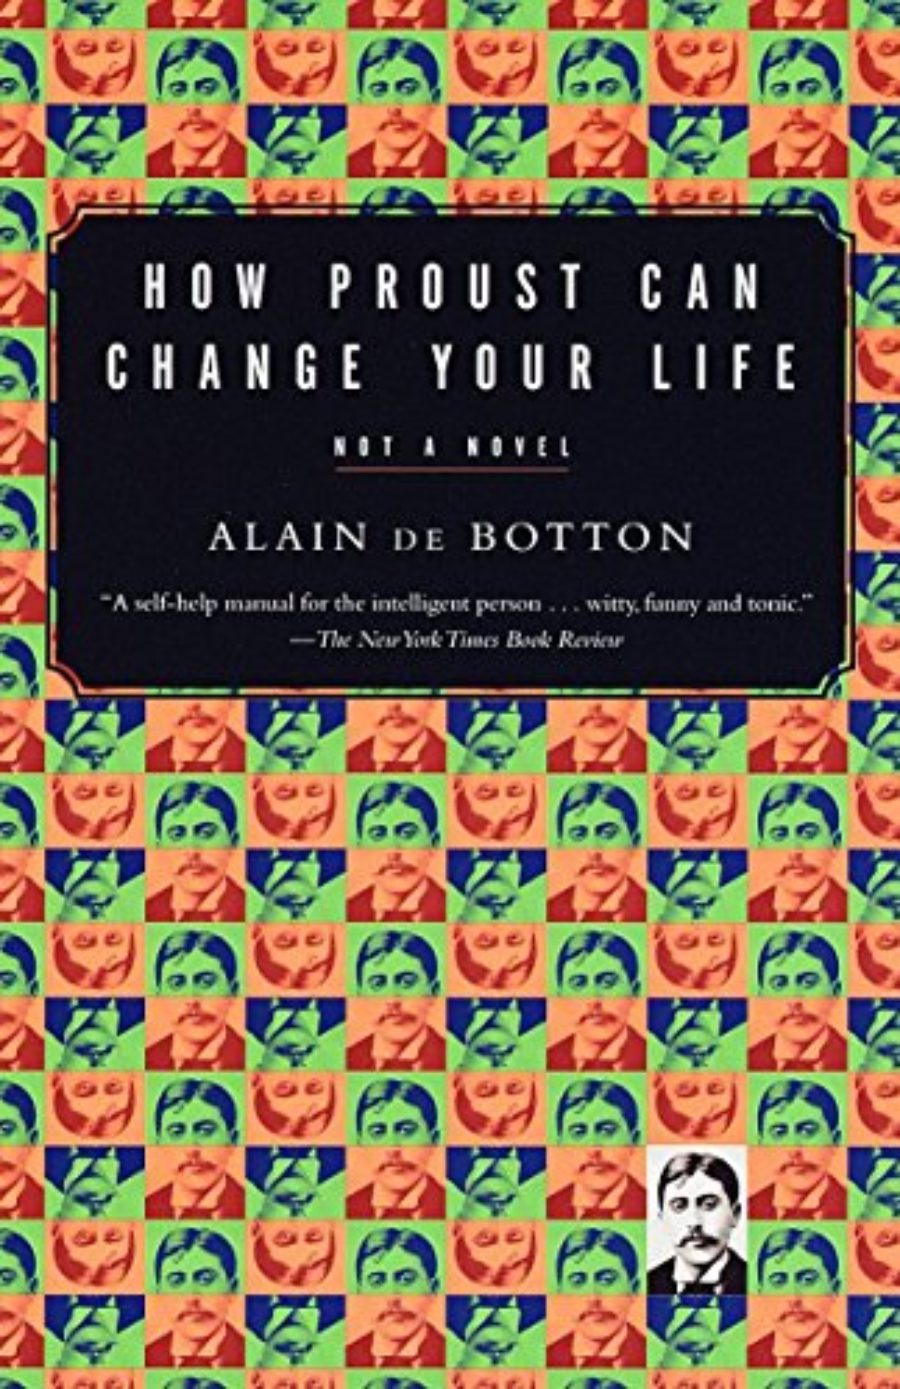 Cover of How Proust Can Change Your Life